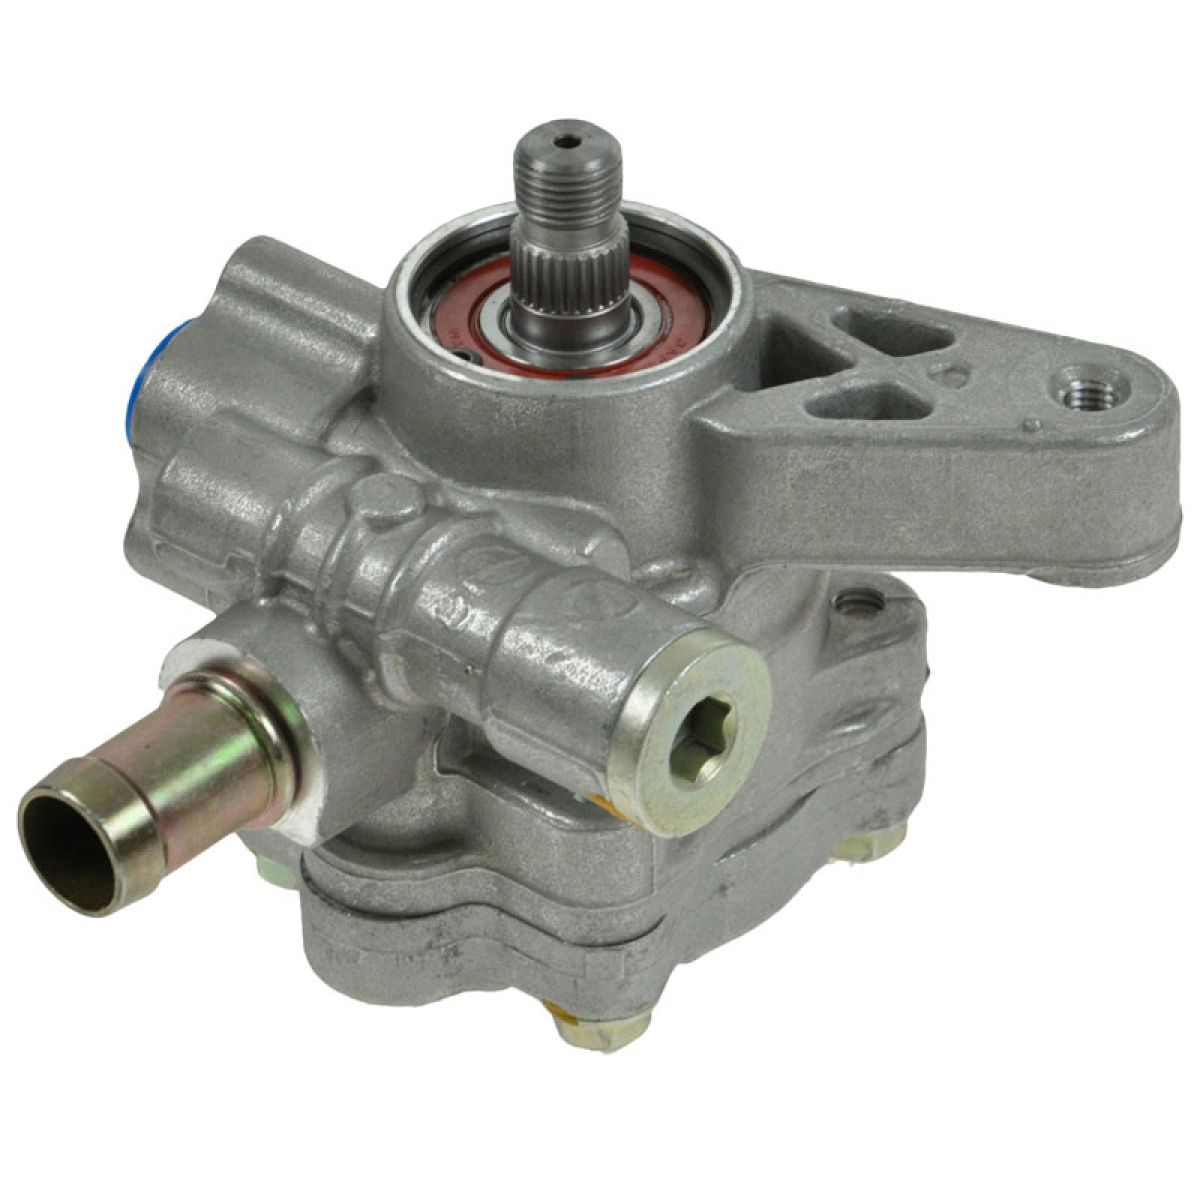 hight resolution of power steering pump new for 98 02 honda accord 2 3l